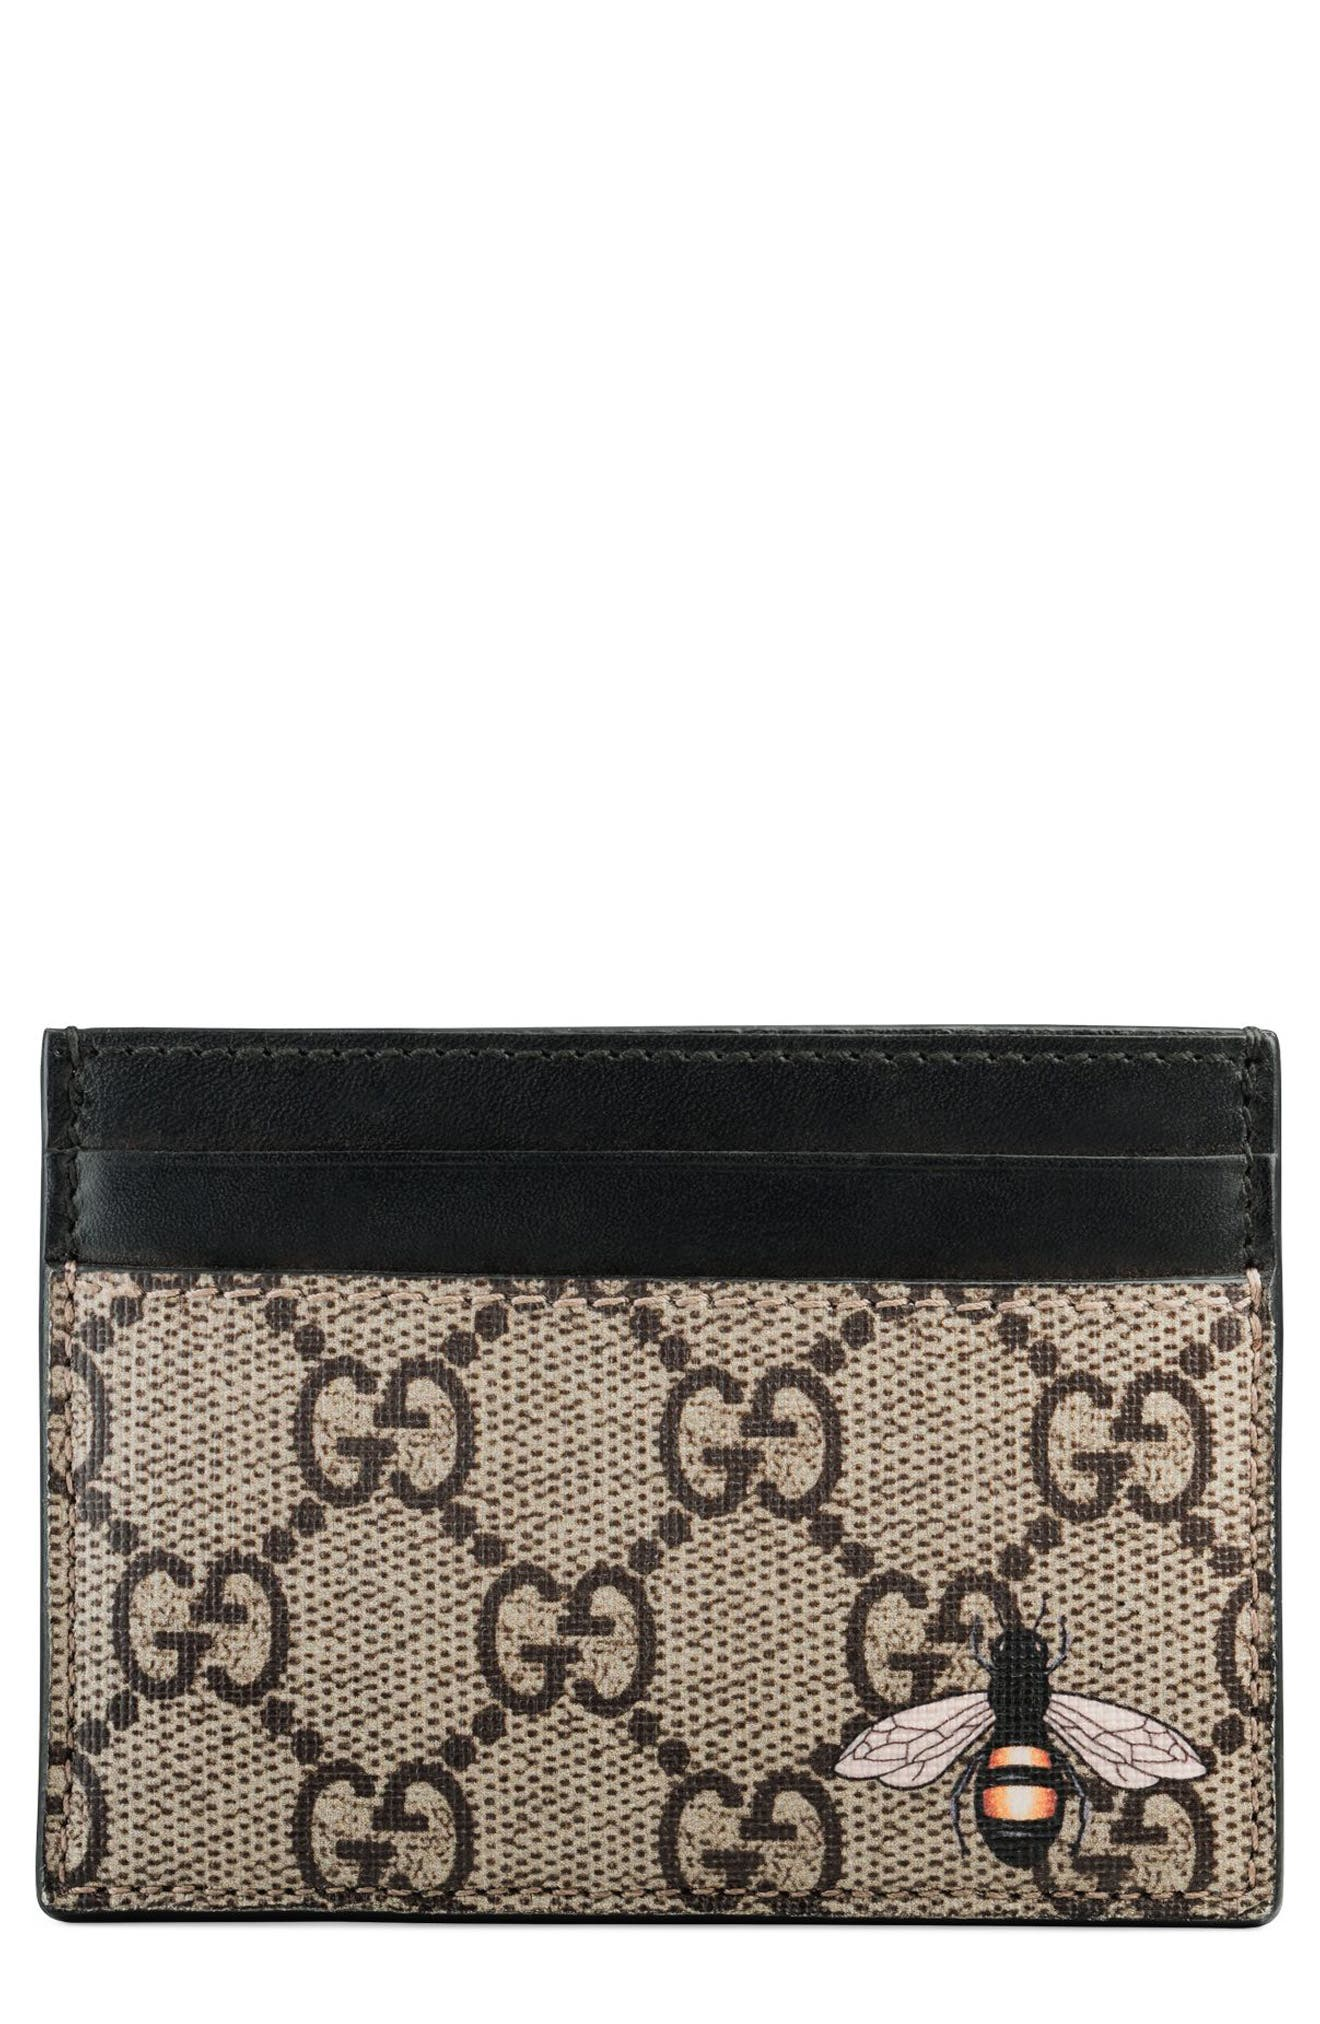 Gucci Bee Card Case